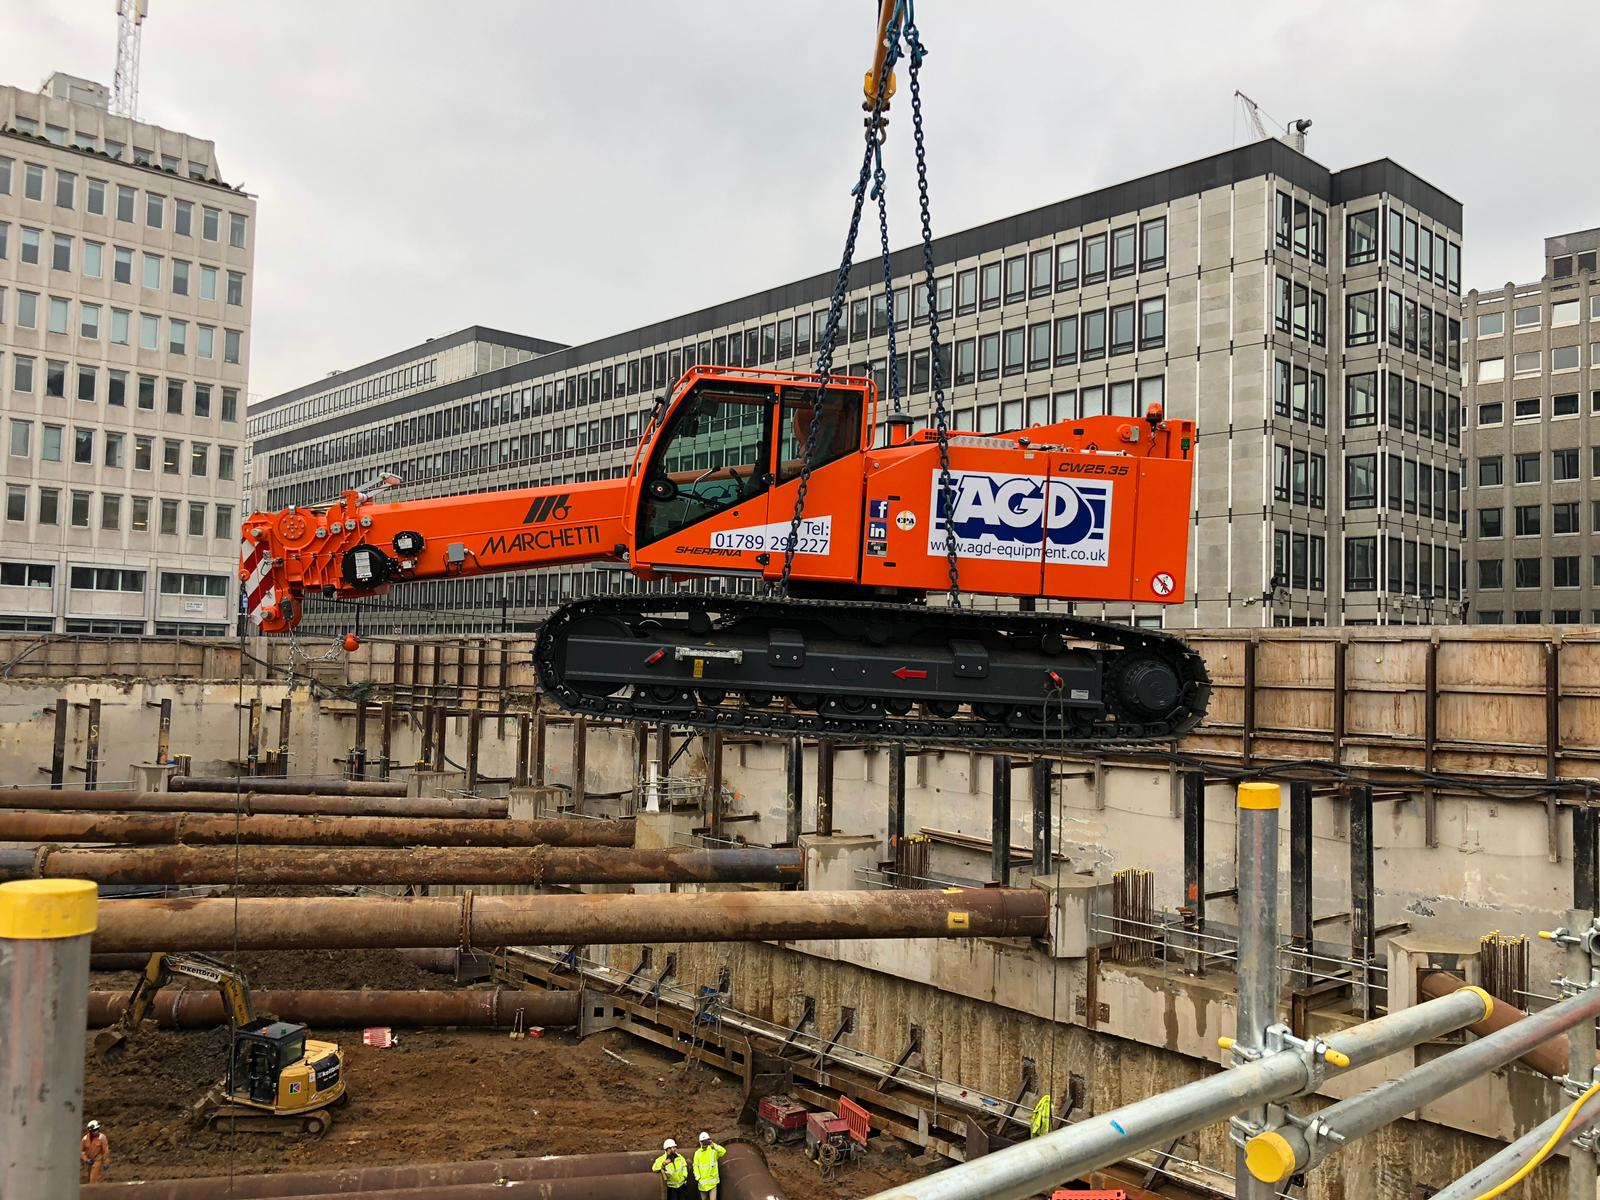 Marchetti Sherpina Telescopic Crawler Crane London